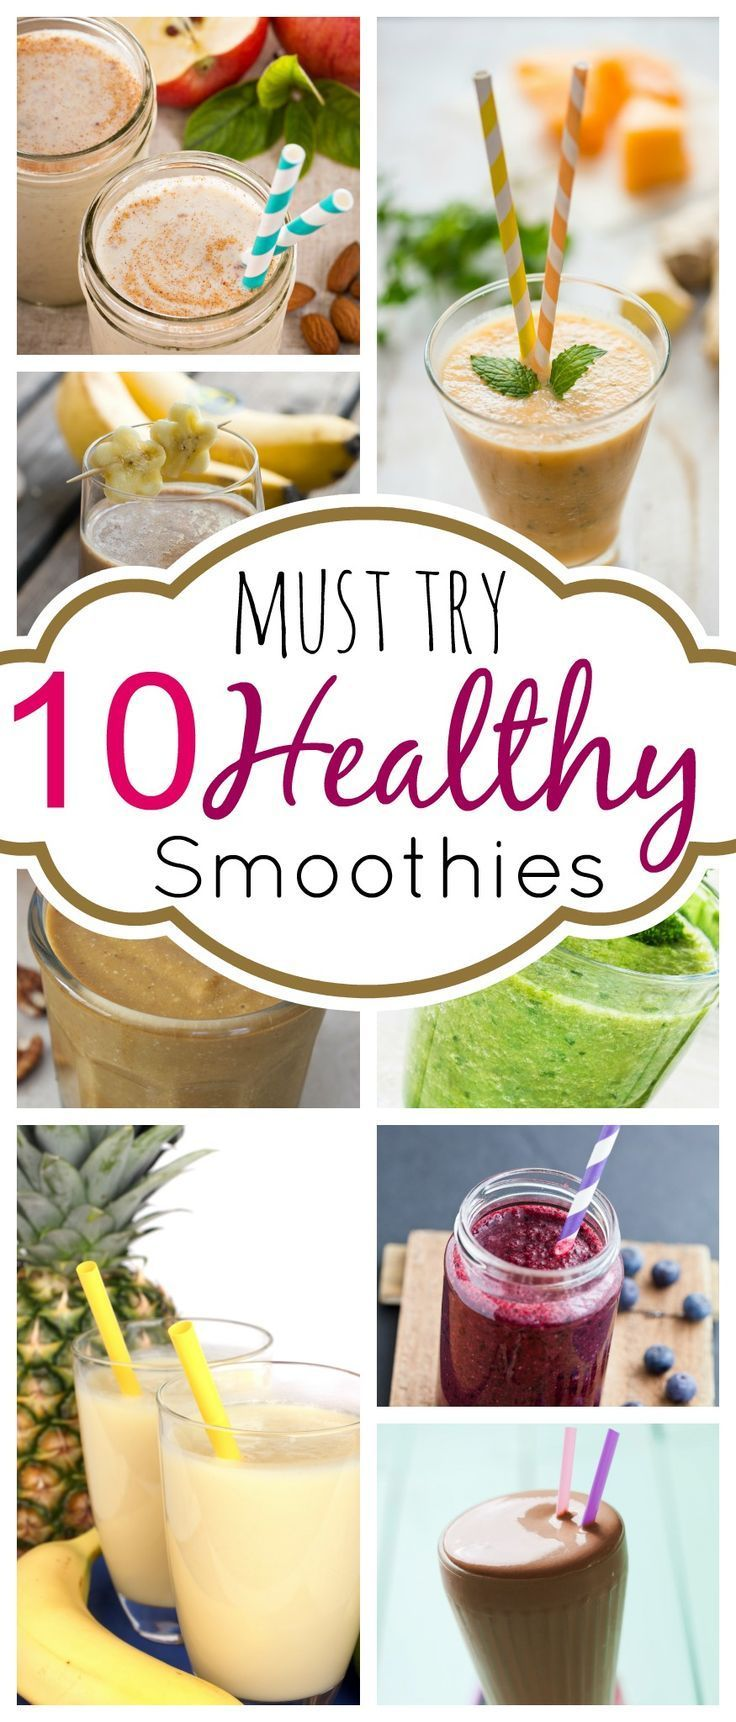 The 10 BEST Must Try HEALTHY Smoothie Recipes - Protein Packed, Gluten Free, Reduced Fat.